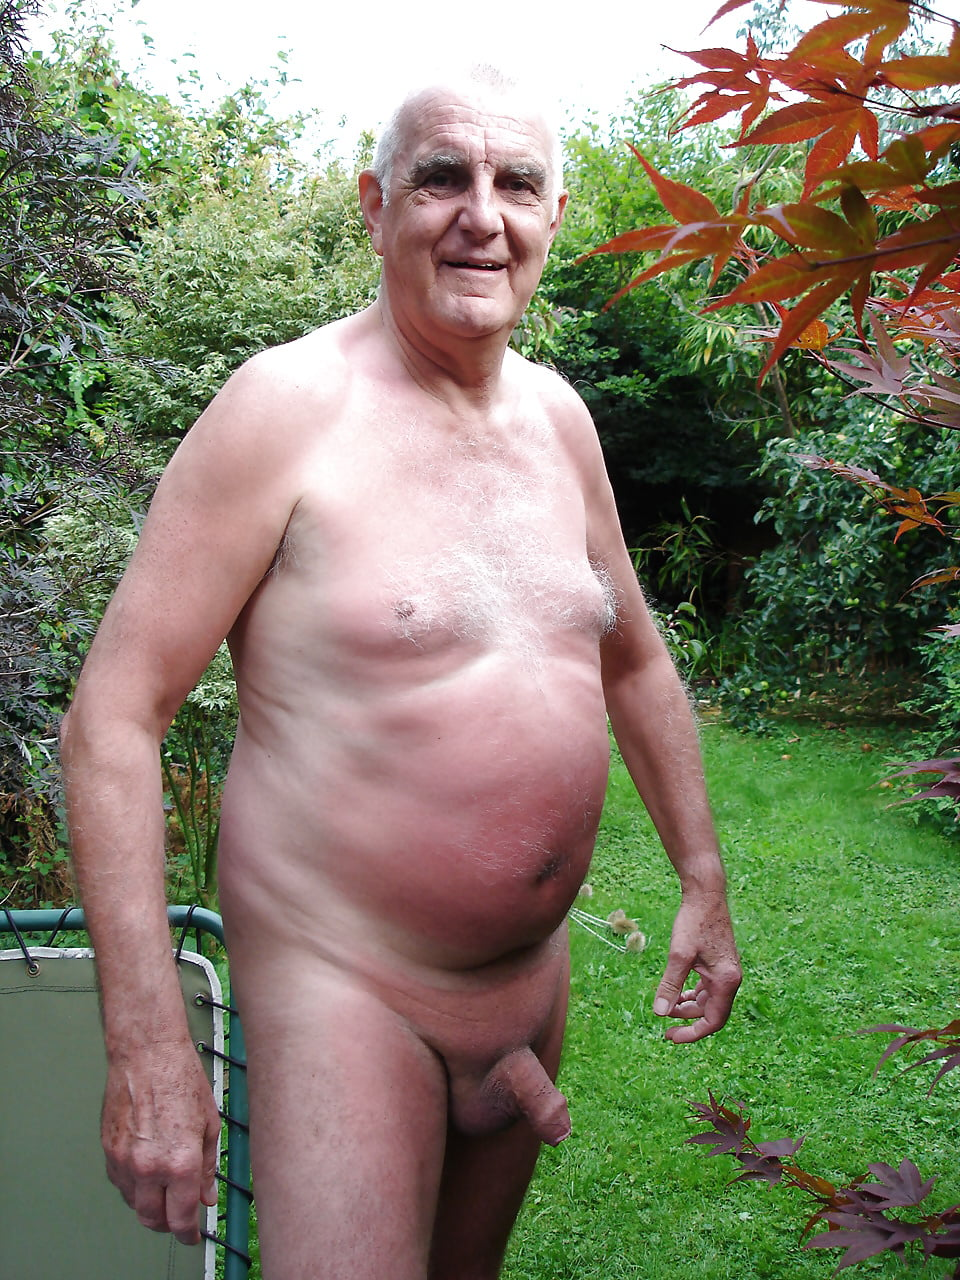 Horny Grandpa's Naked Images